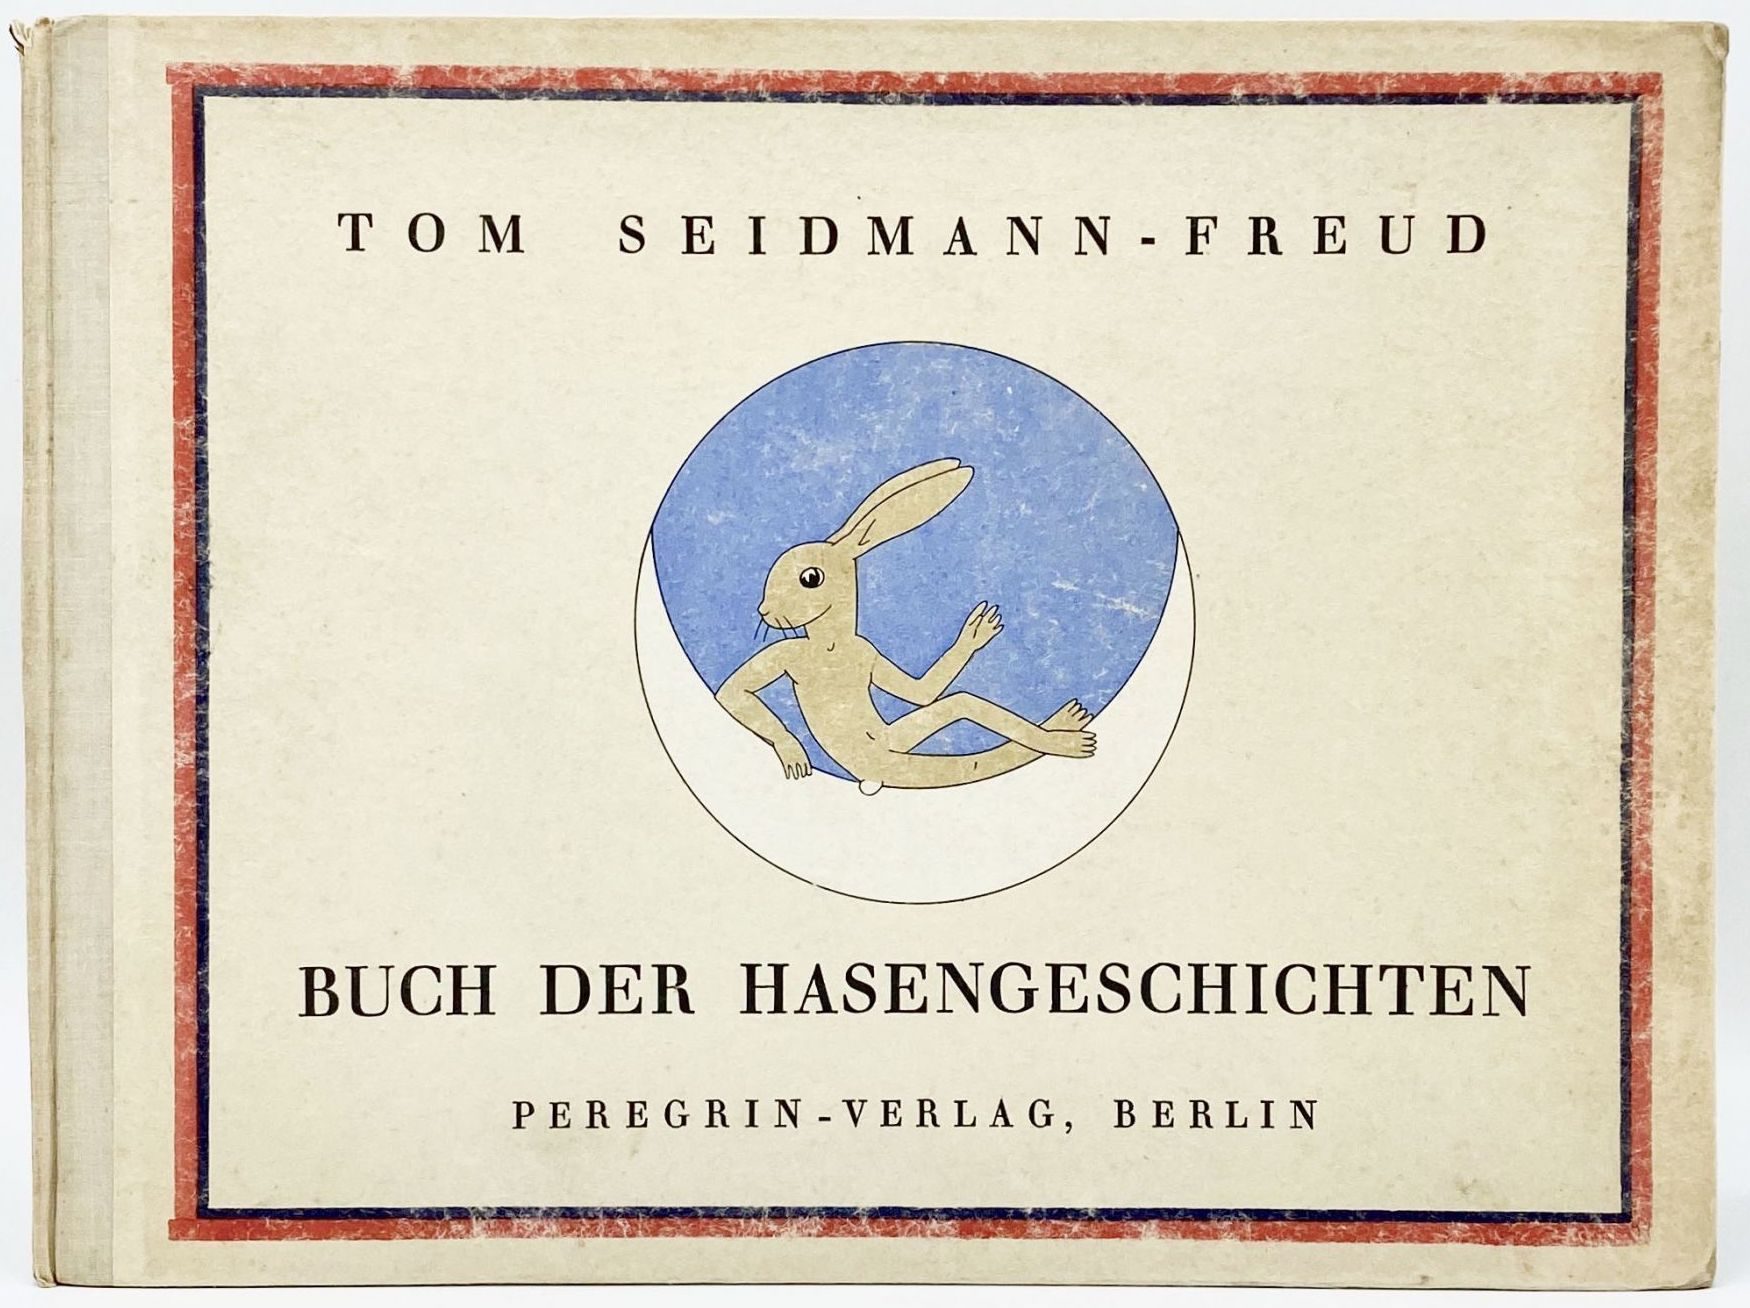 Tom Seidmann-Freud Rabbits Martha Freud